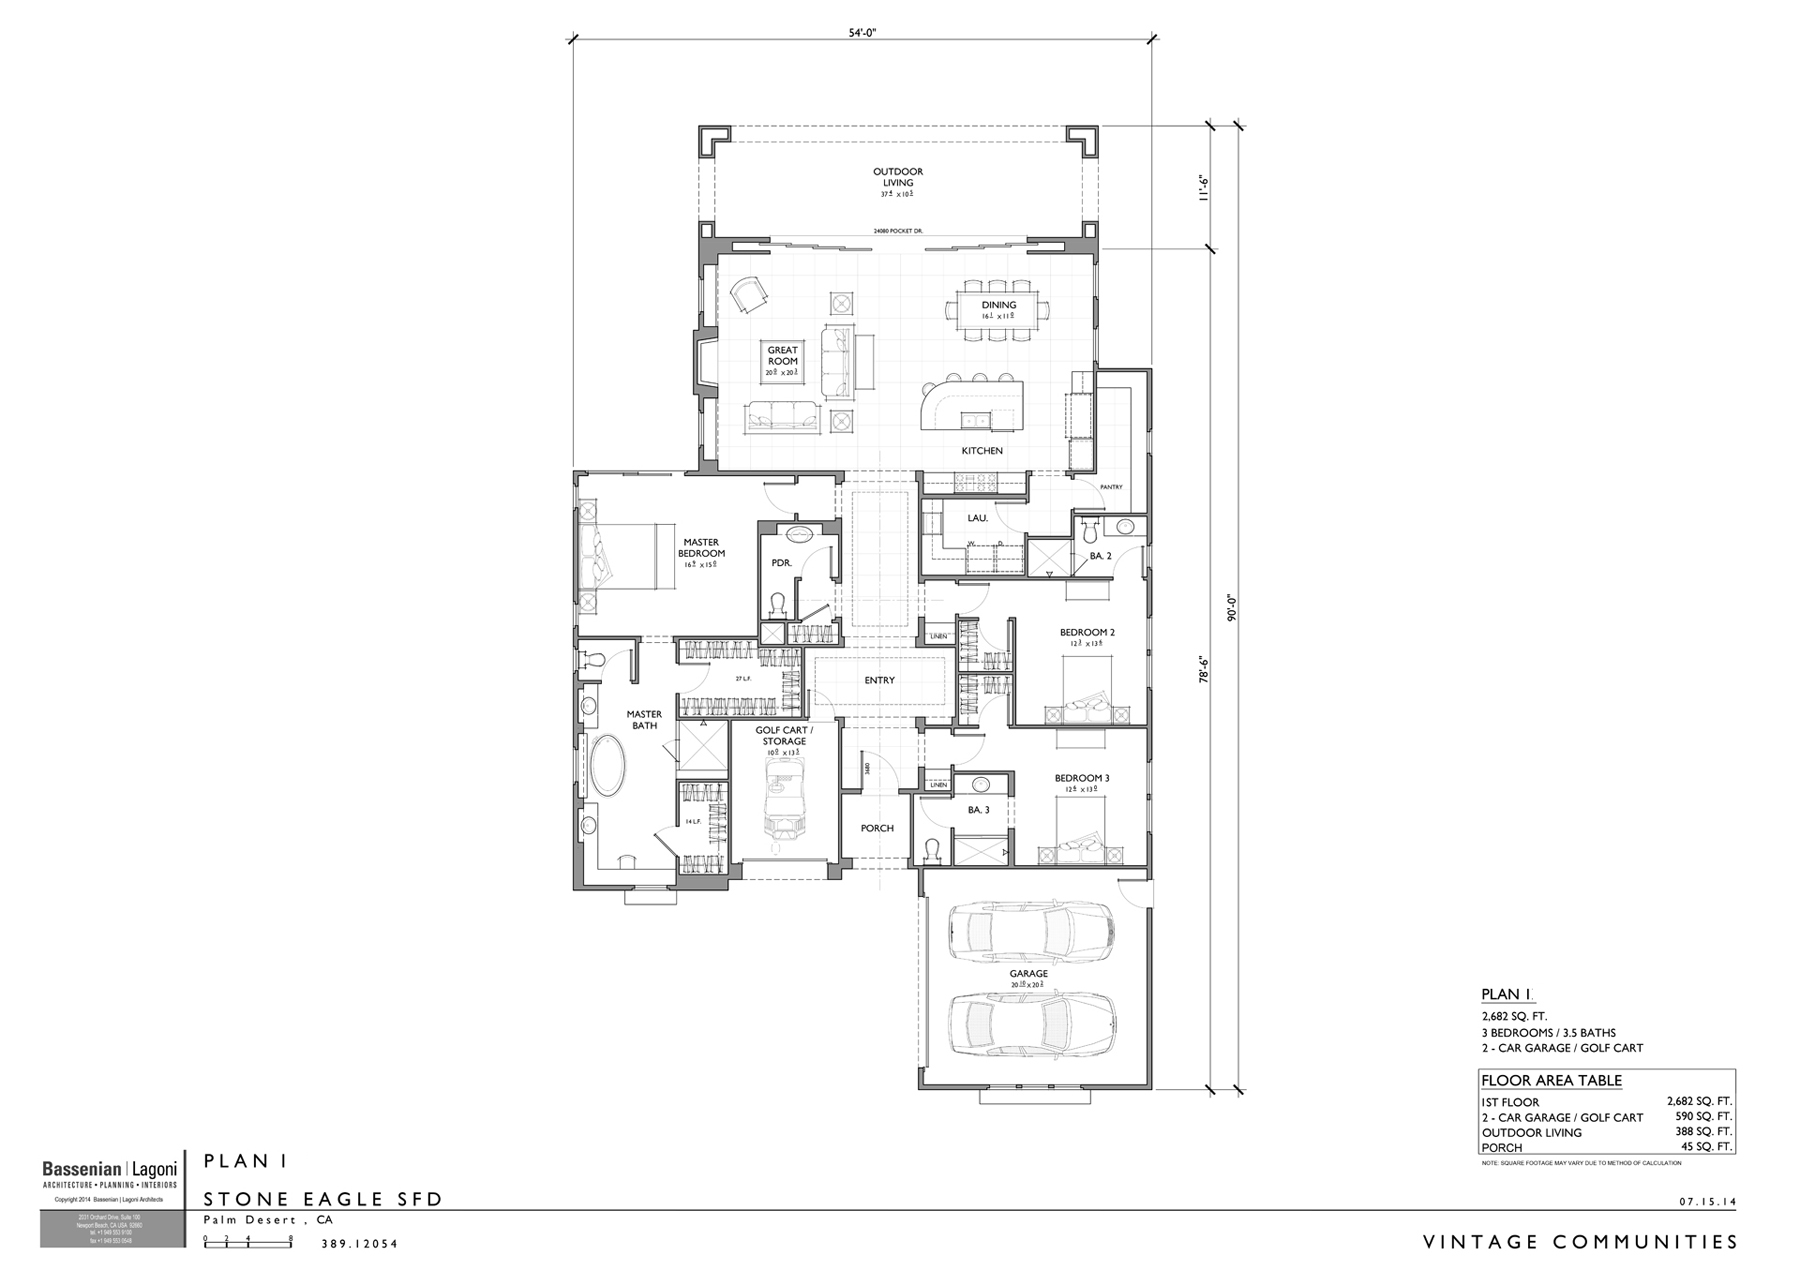 Plan_1_floorplan_72